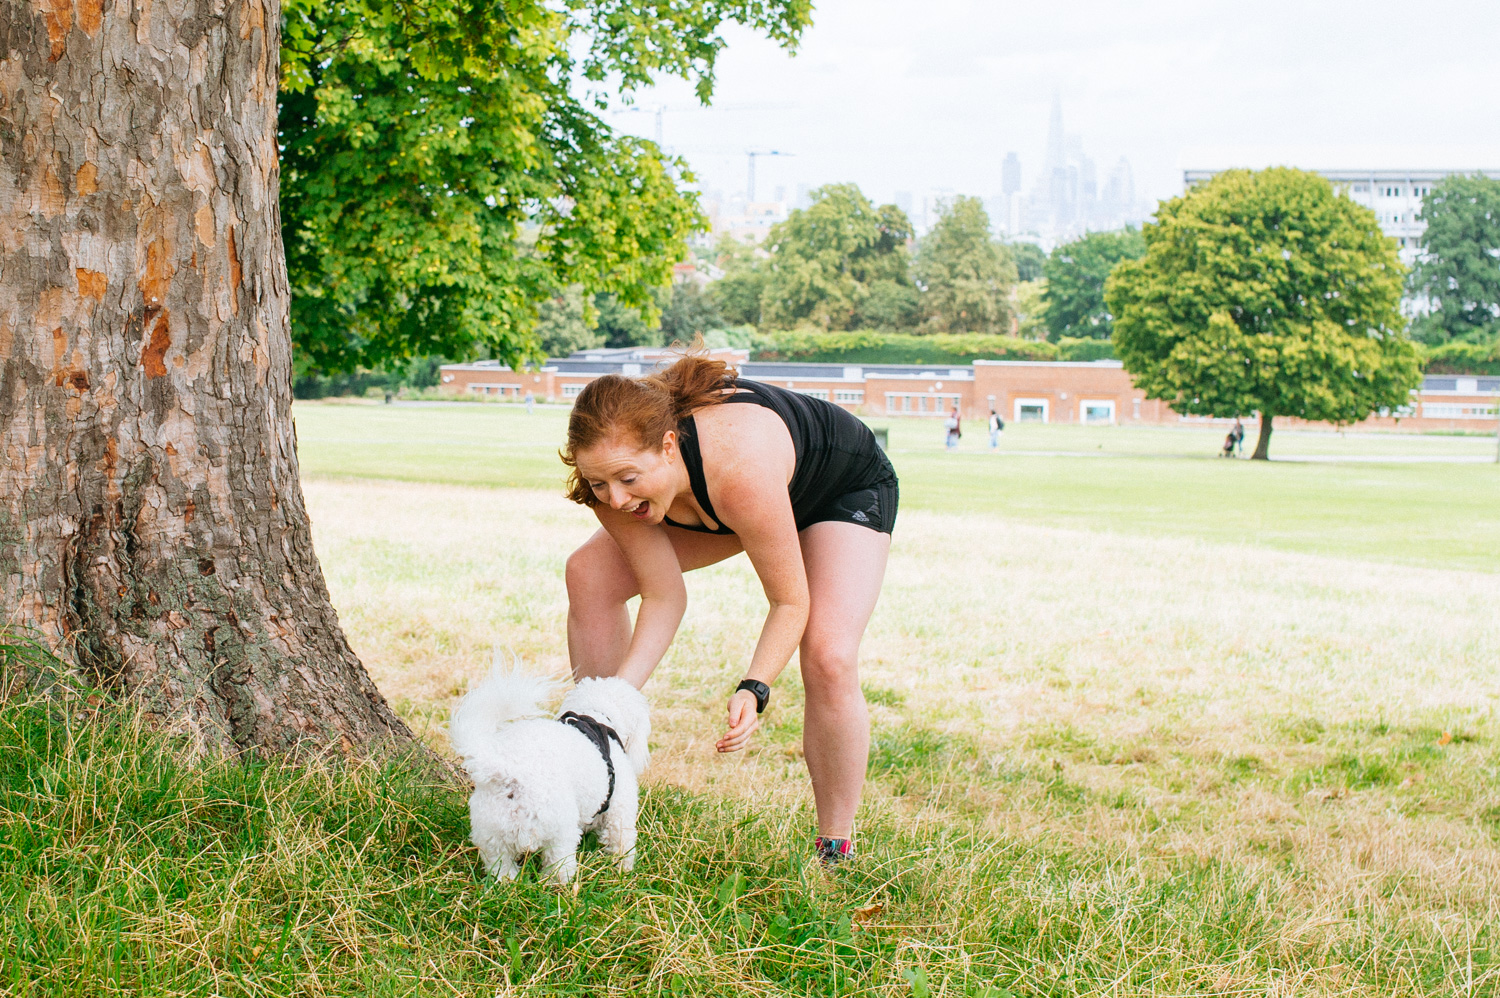 Are Runners Pedestrians? - A Pretty Place to Play, London Running and Fitness Blog